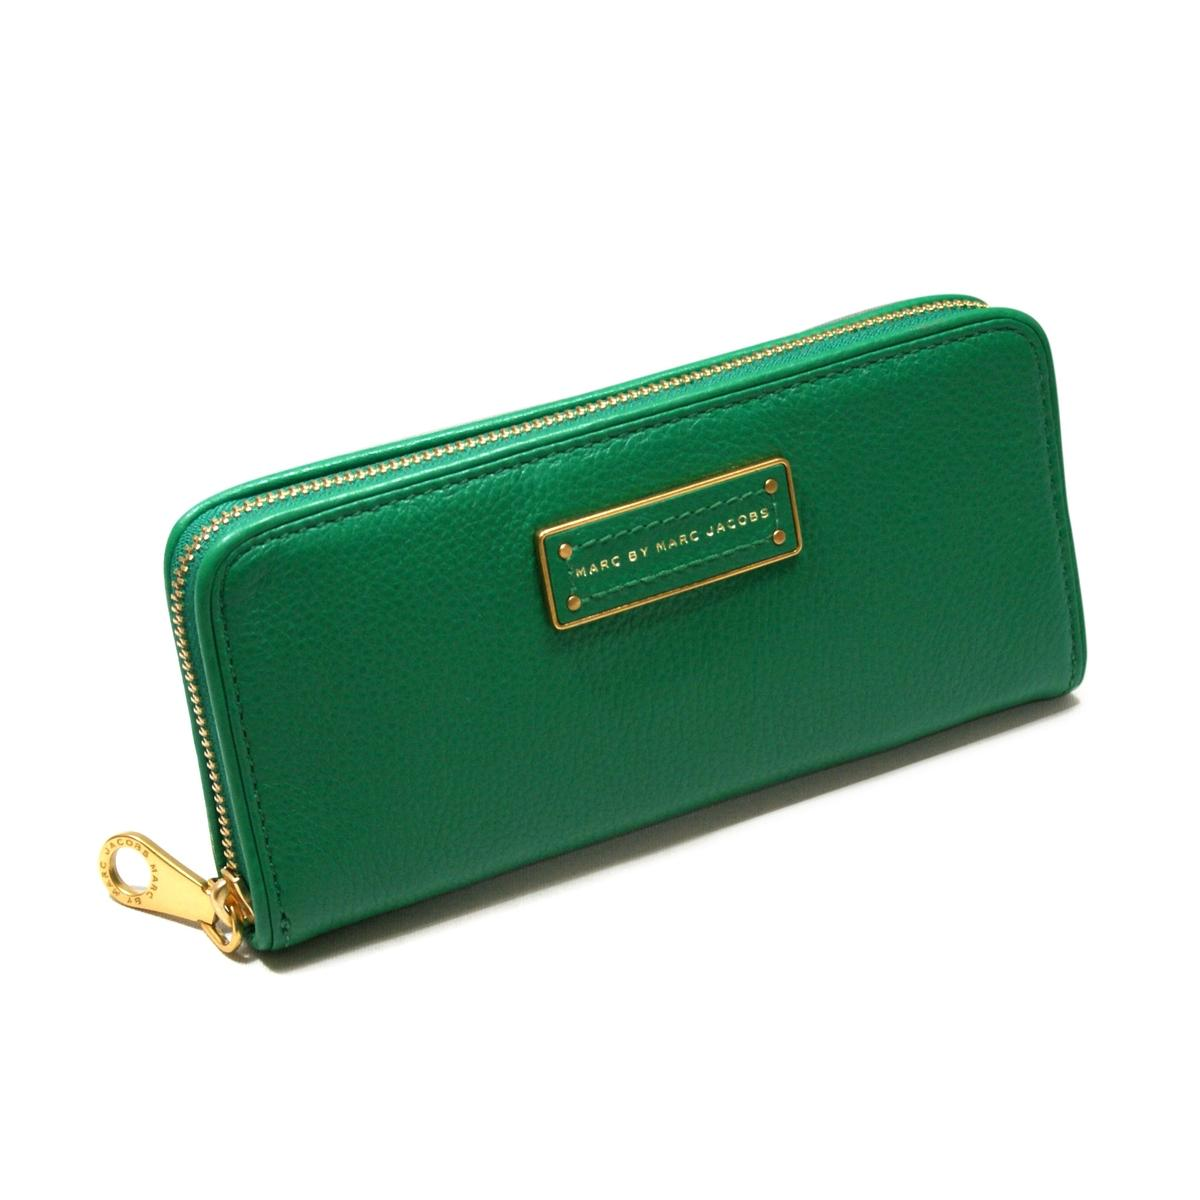 e46b816953 ... Marc Jacobs · Soccer Pitch Green Genuine Leather Zip Around Wallet/  Clutch. CLICK THUMBNAIL TO ZOOM. Found ...